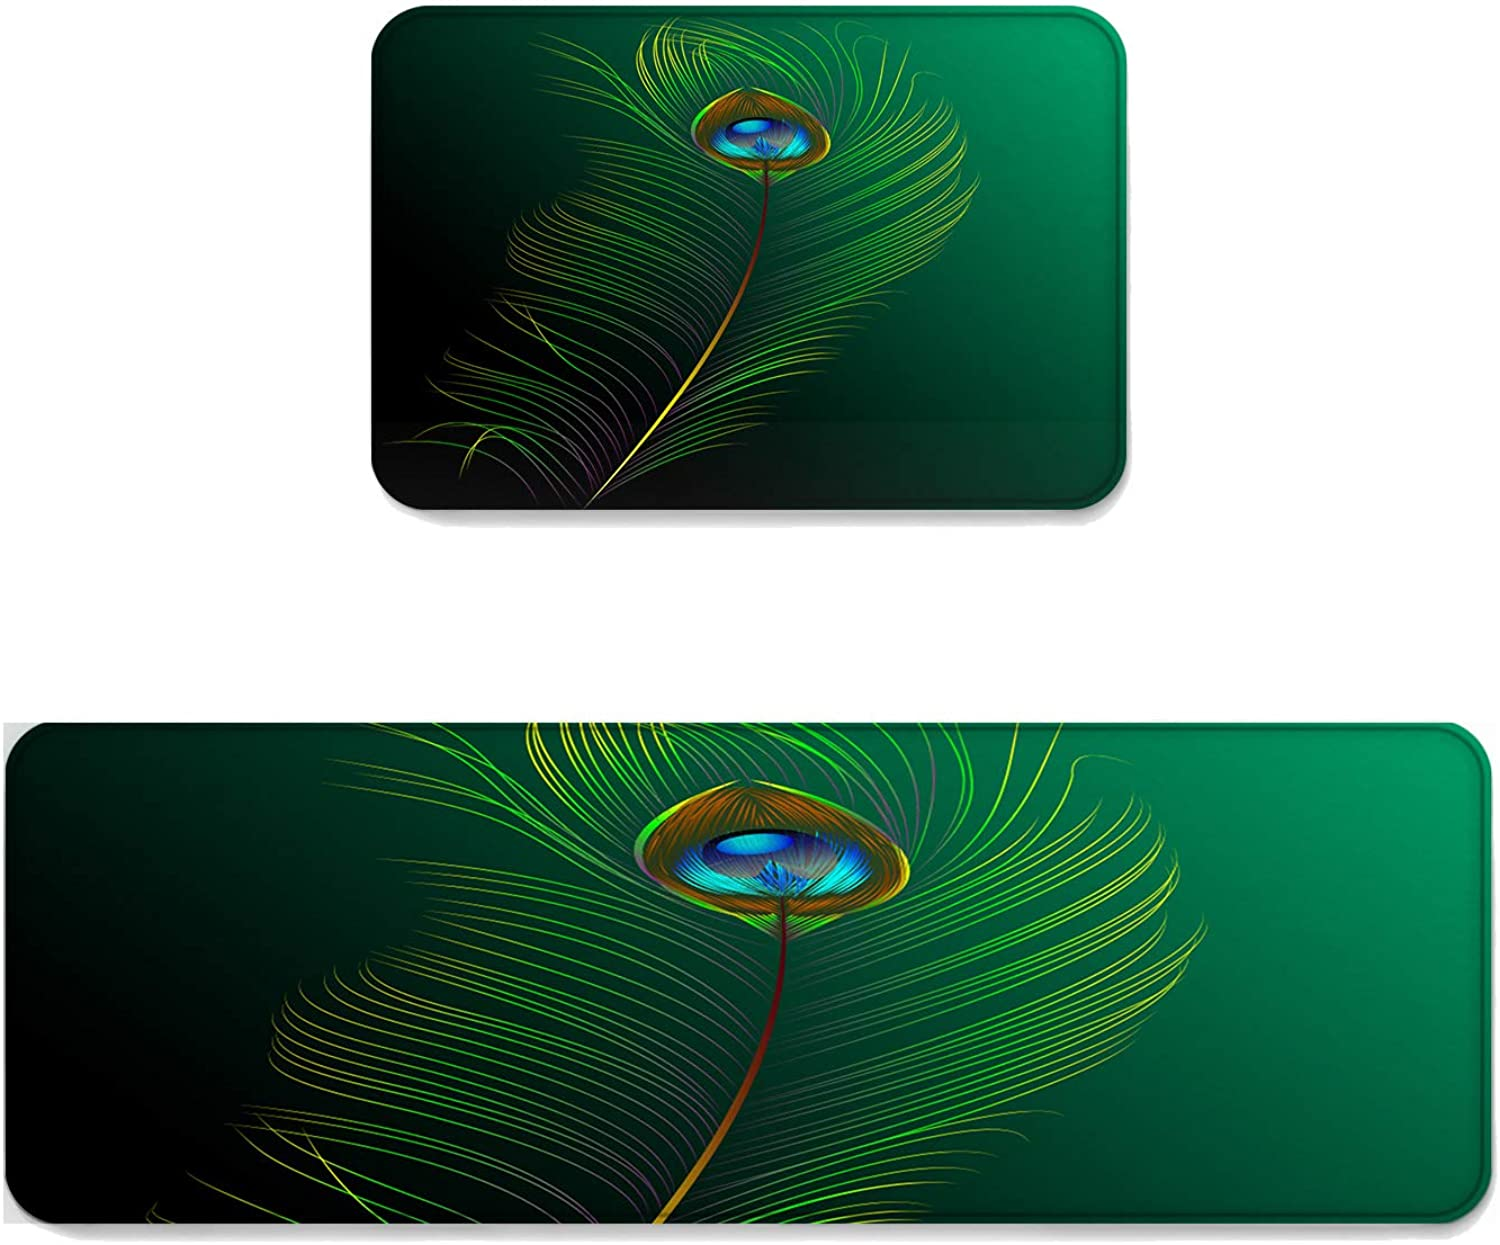 Fantasy Star Kitchen Rug Sets 2 Piece Floor Mats Non-Slip Rubber Backing Area Rugs Peacock Feather Doormat Washable Carpet Inside Door Mat Pad Sets (19.7  x 31.5 +19.7  x 47.2 )